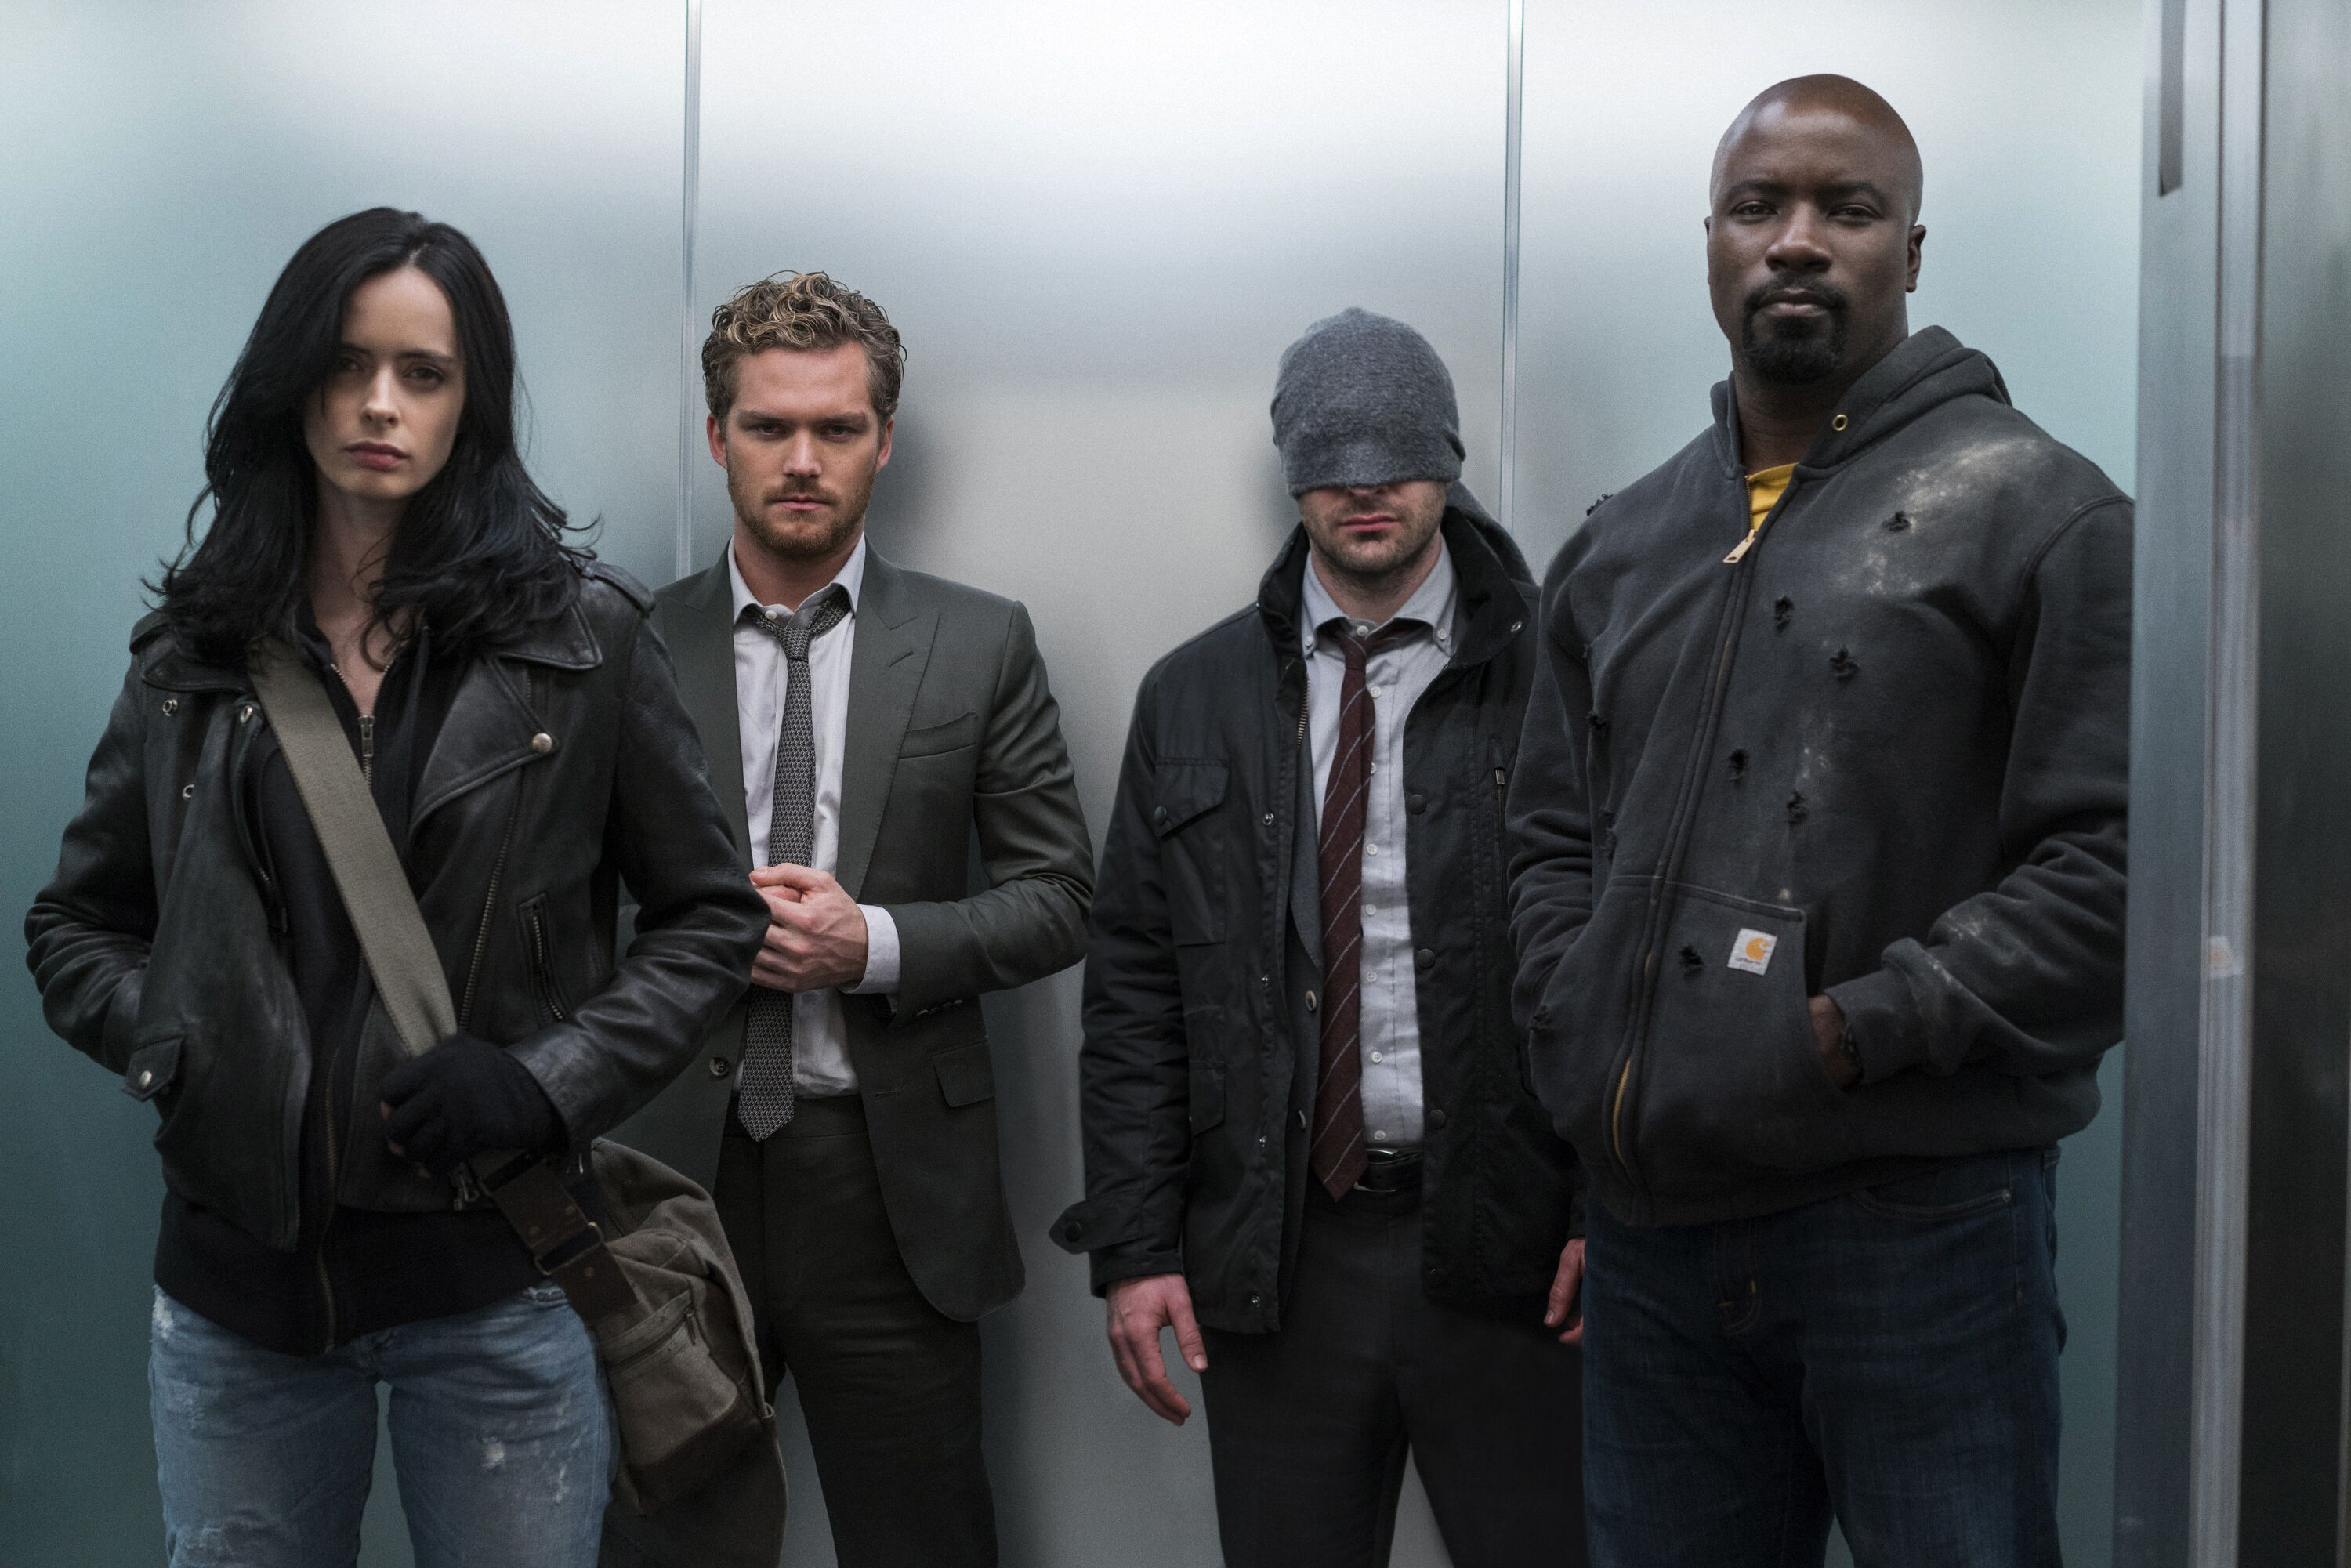 Comic book storylines we won't see in Netflix's Marvel shows